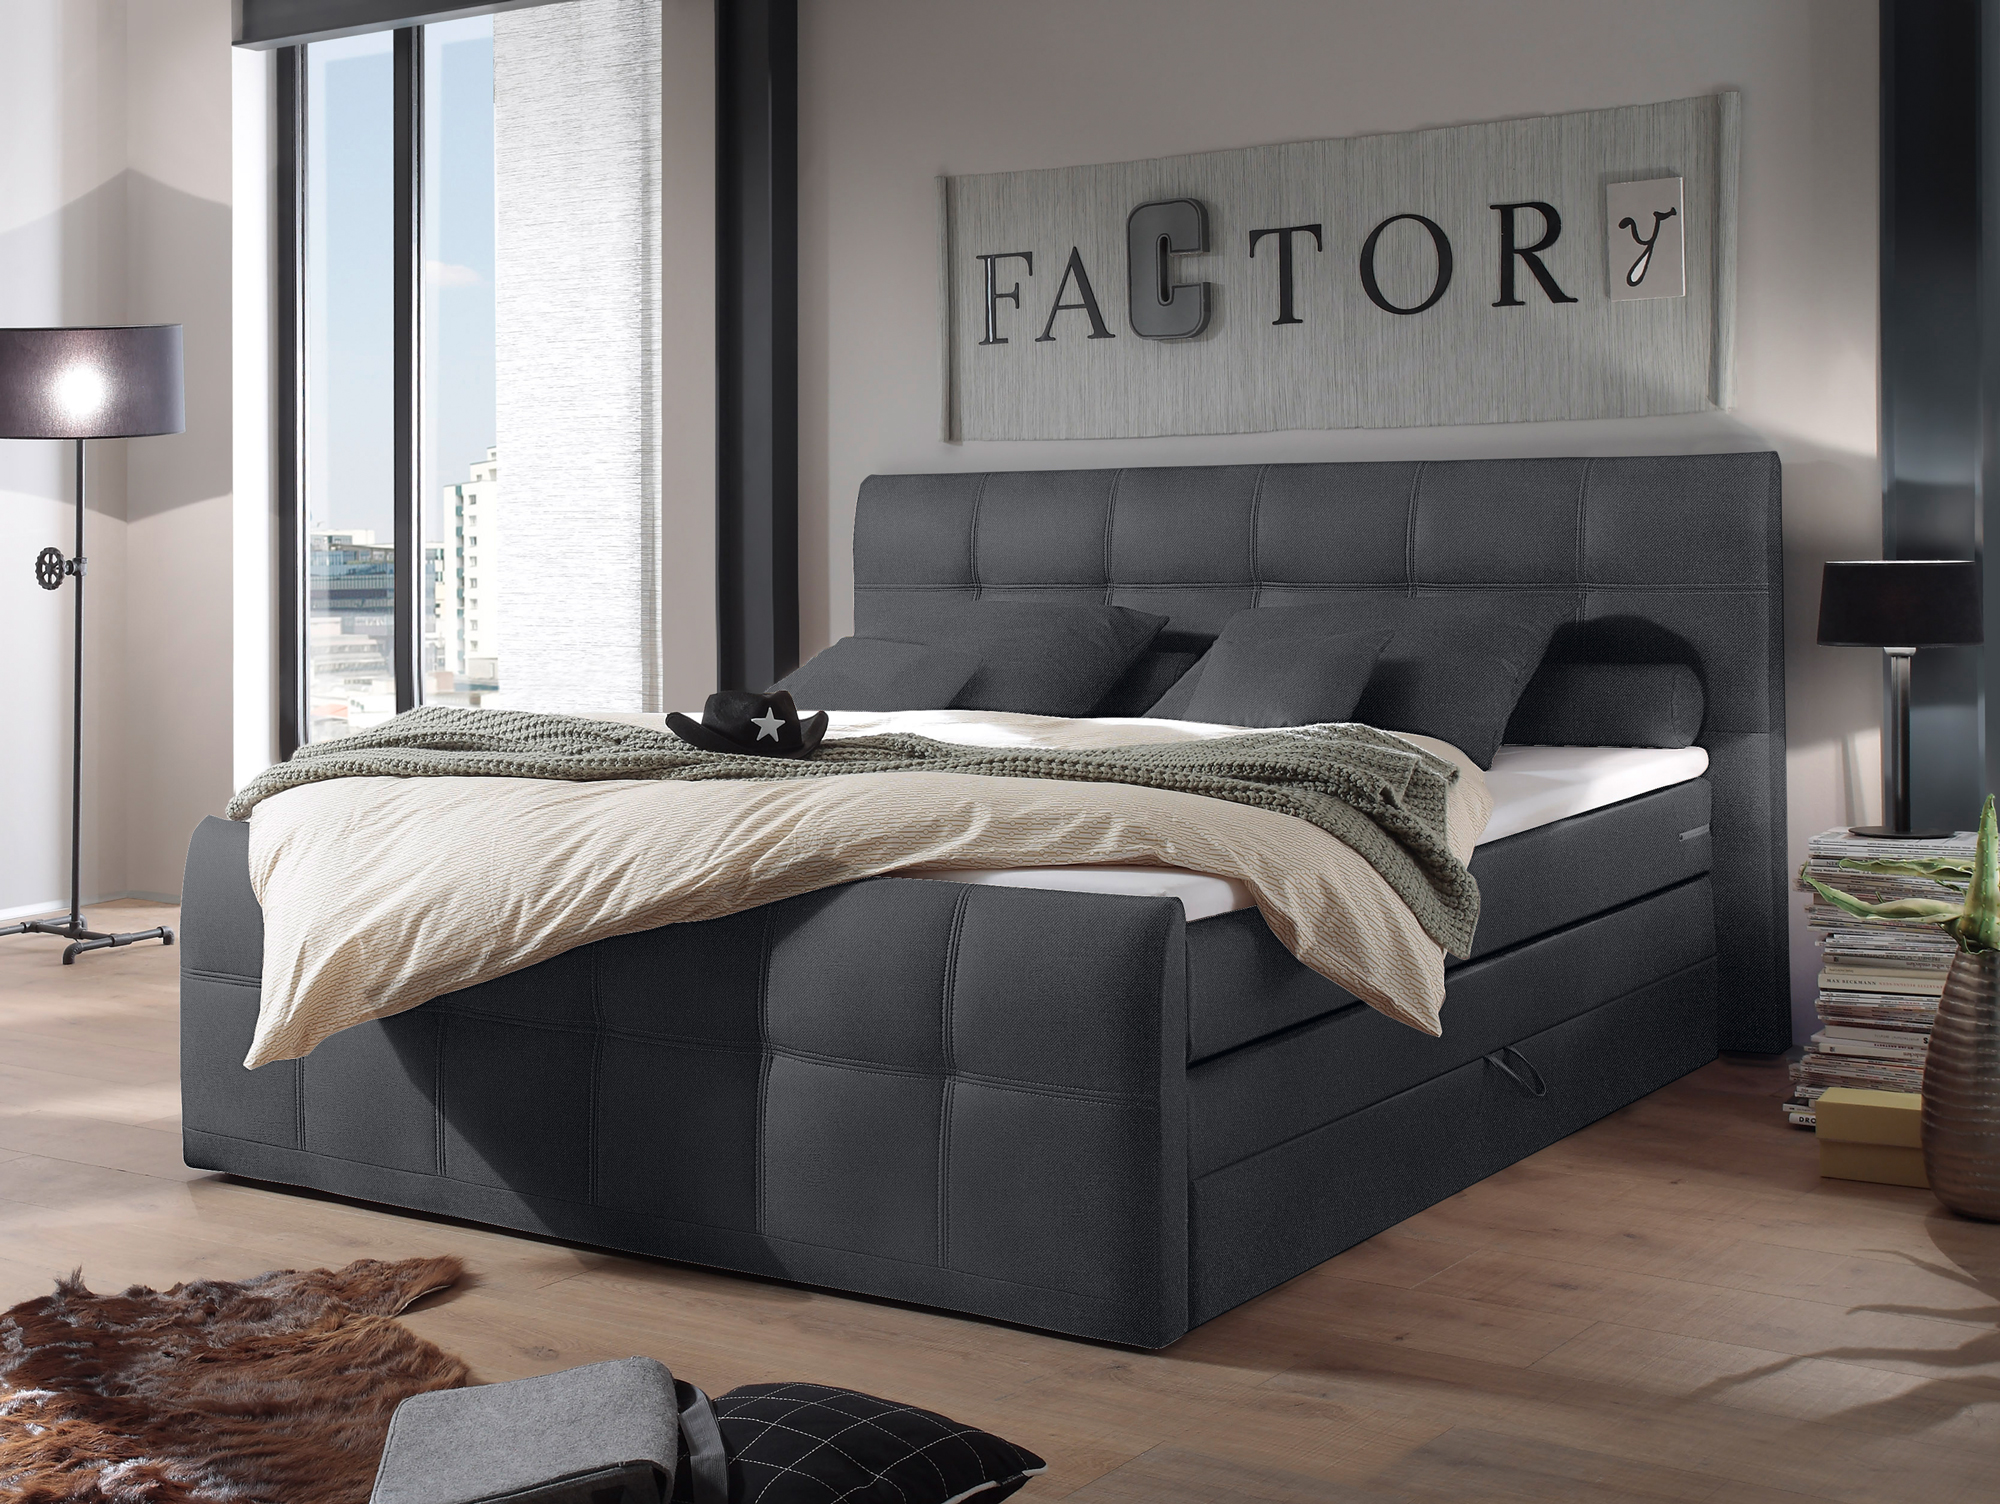 samara boxspringbett integrierter bettkasten 180x200 cm. Black Bedroom Furniture Sets. Home Design Ideas